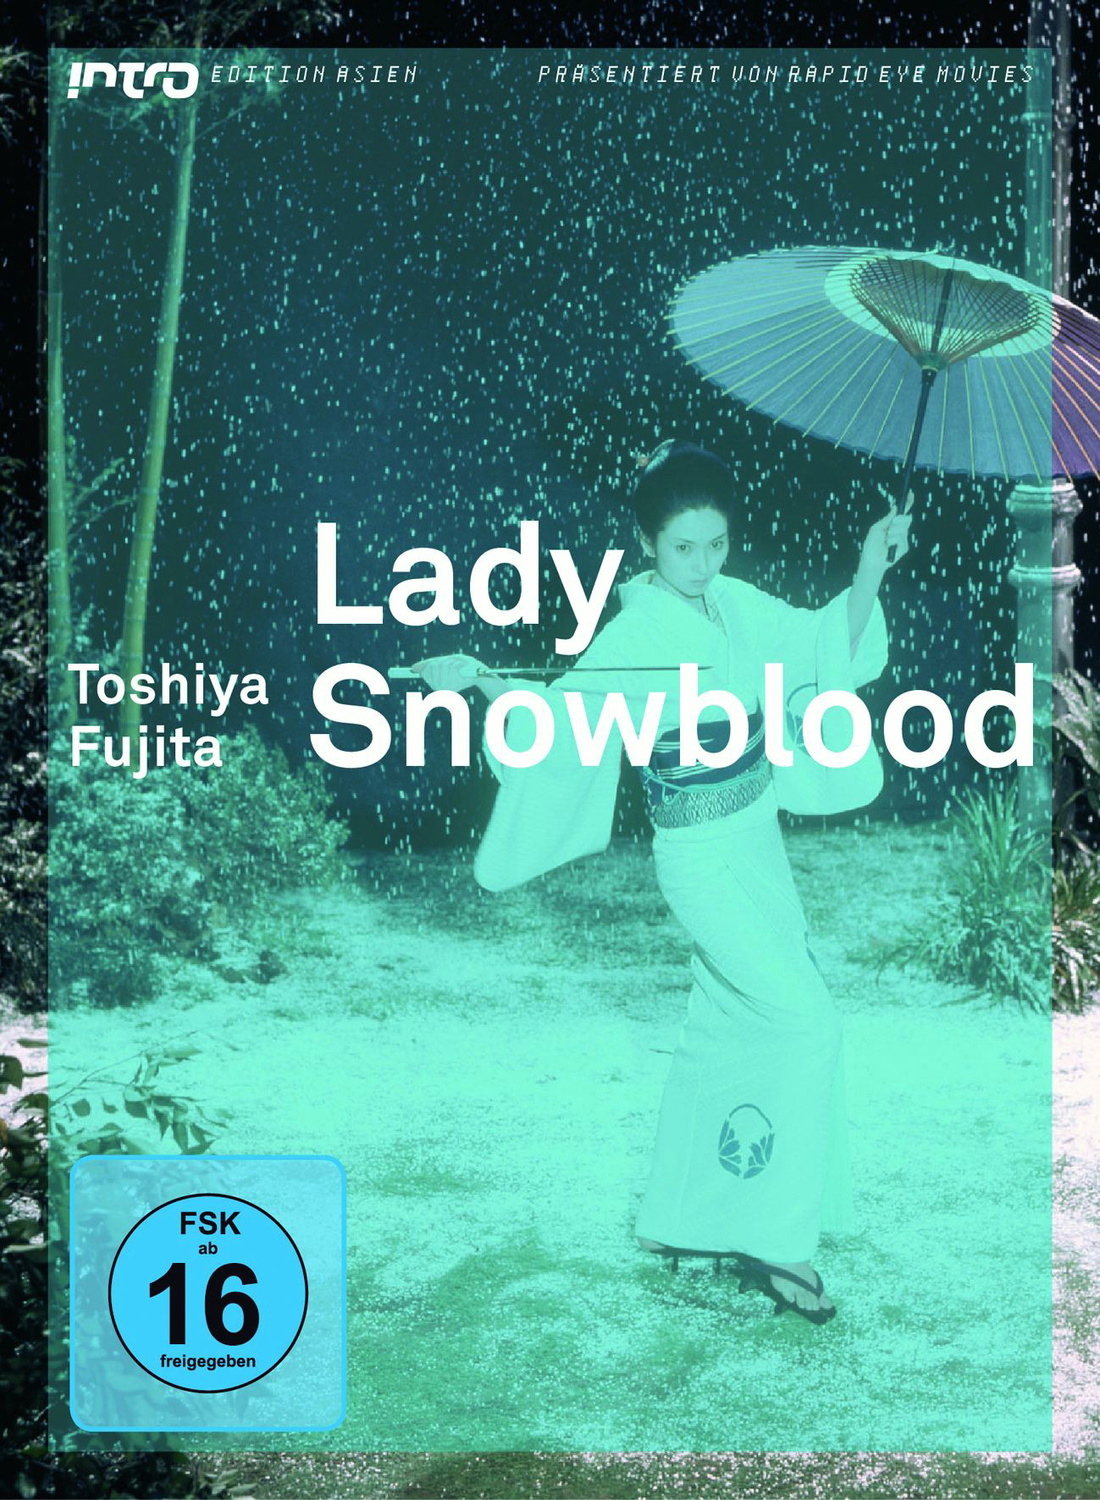 Lady Snowblood - Intro Edition Asien(OmU)